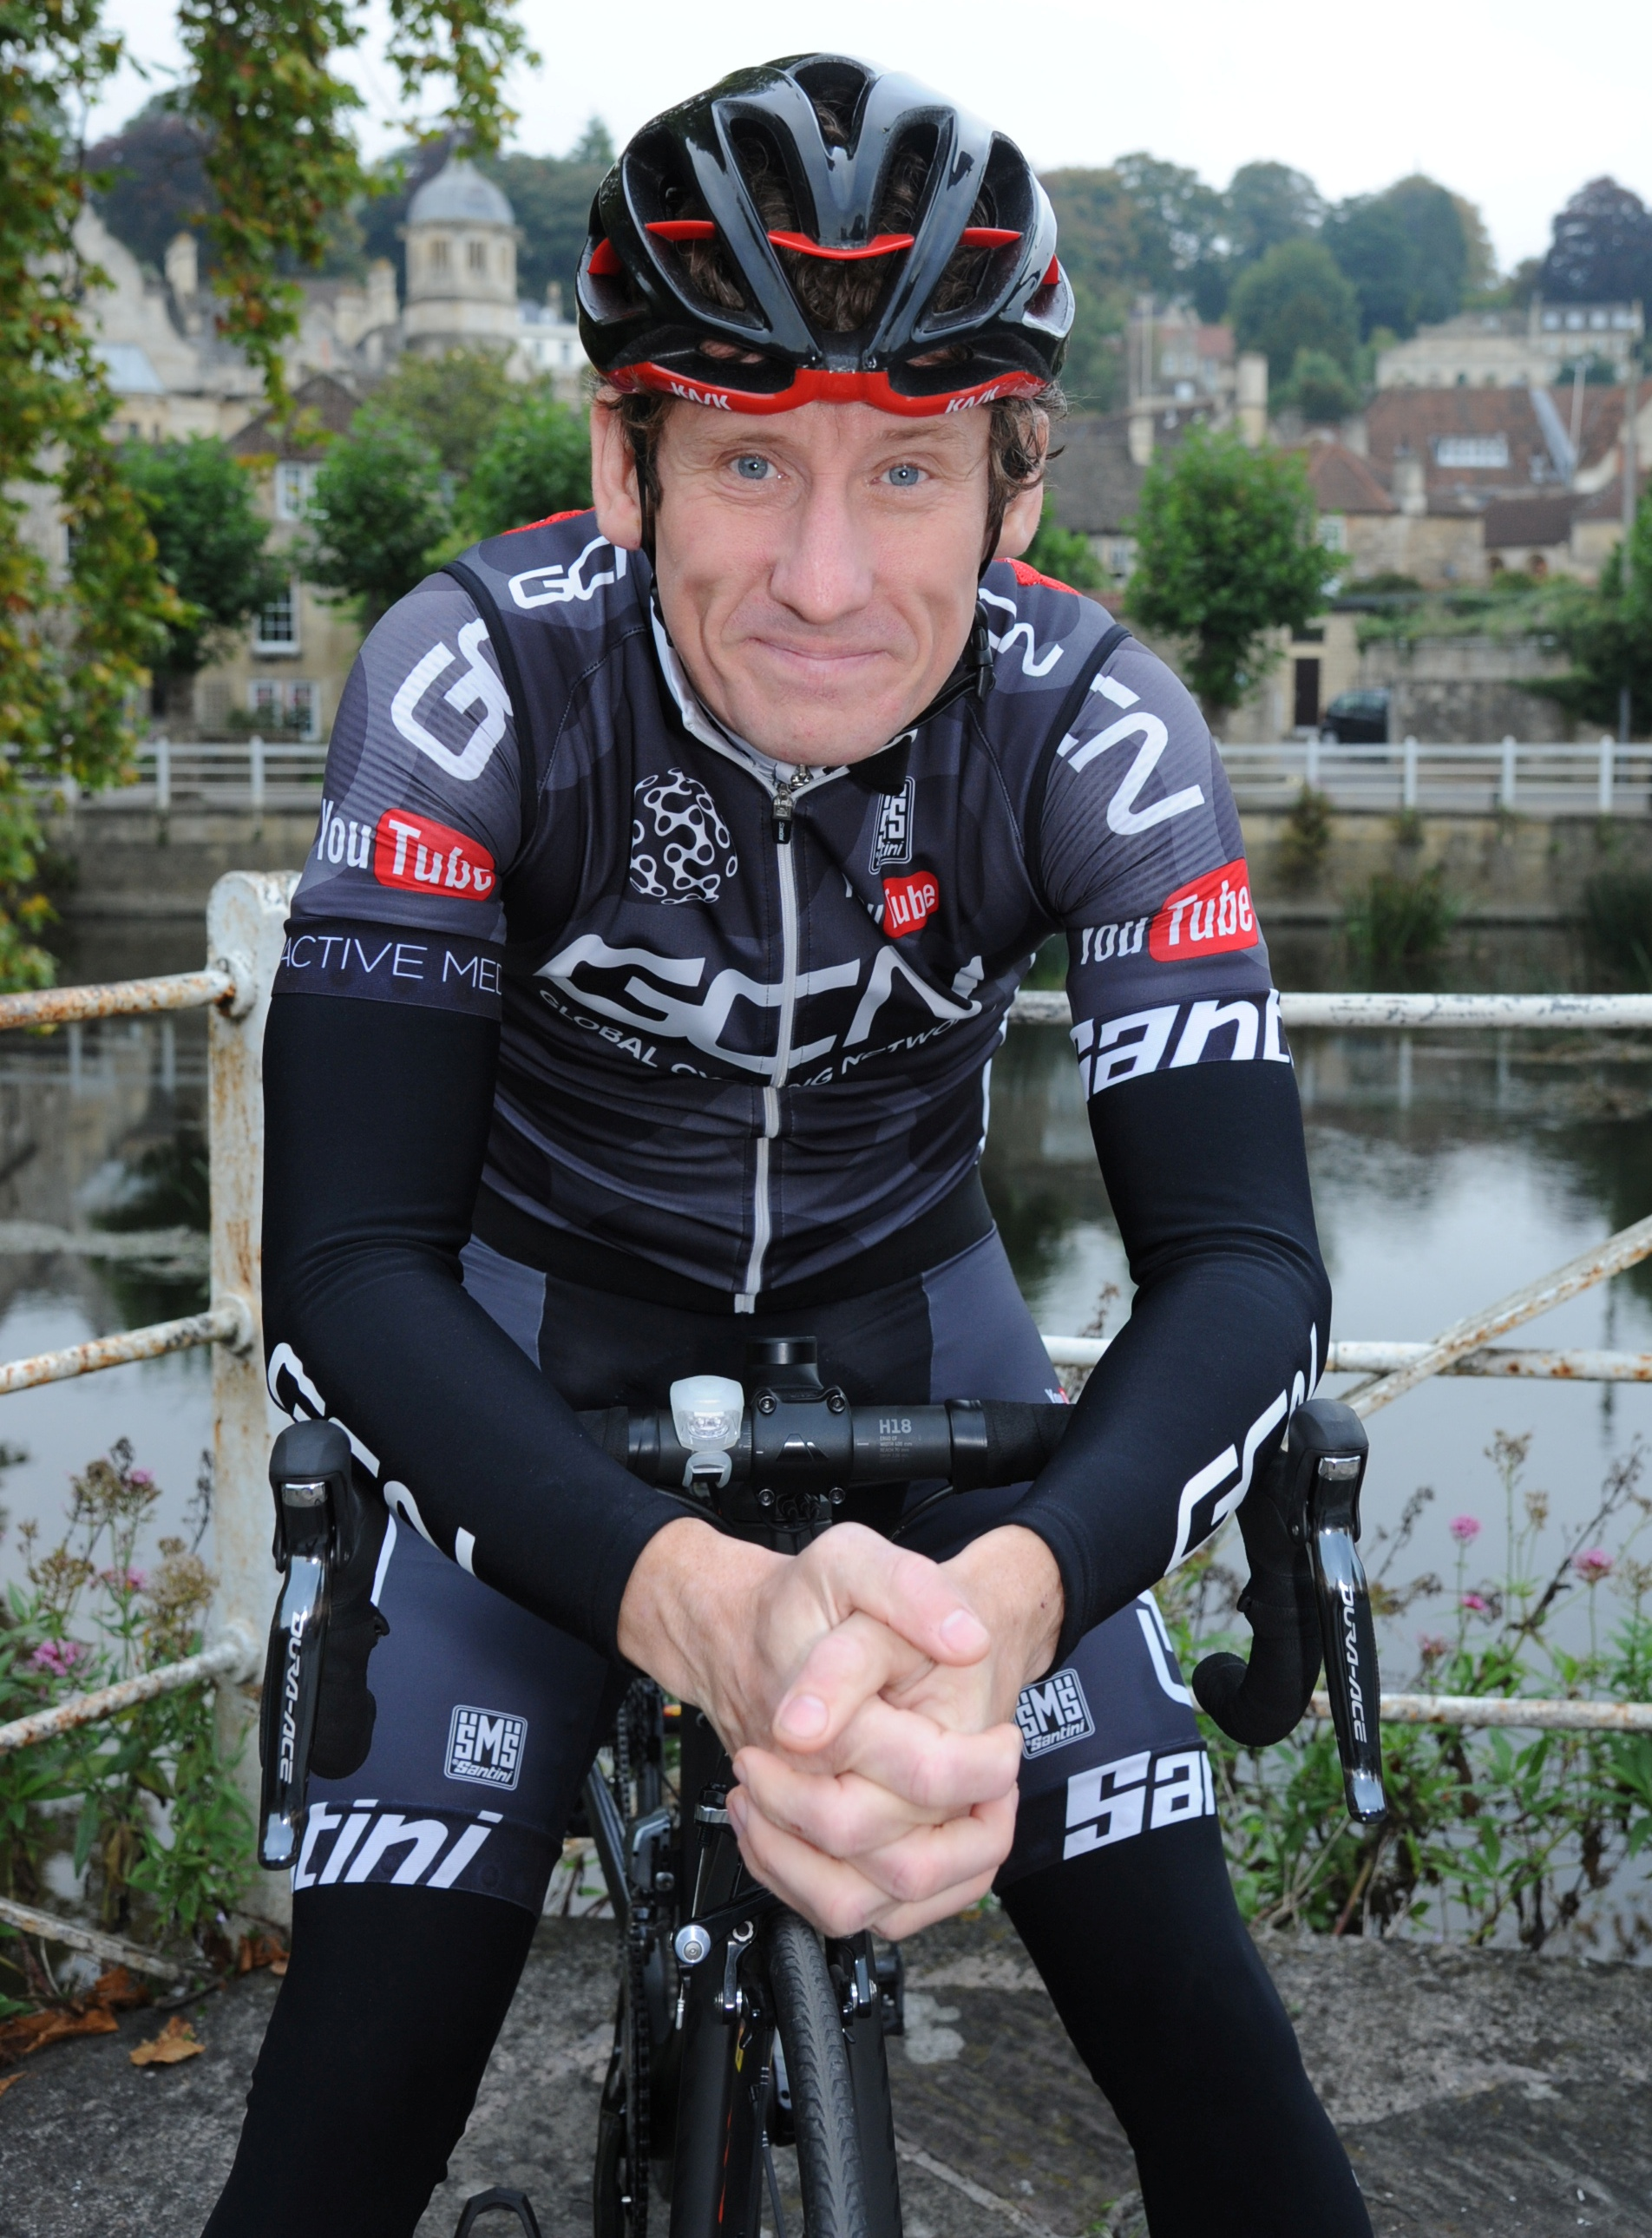 Matt Stephens, former British Road Race Champion, now a YouTube presenter, who has made Bradford on Avon his home. Picture by Trevor Porter